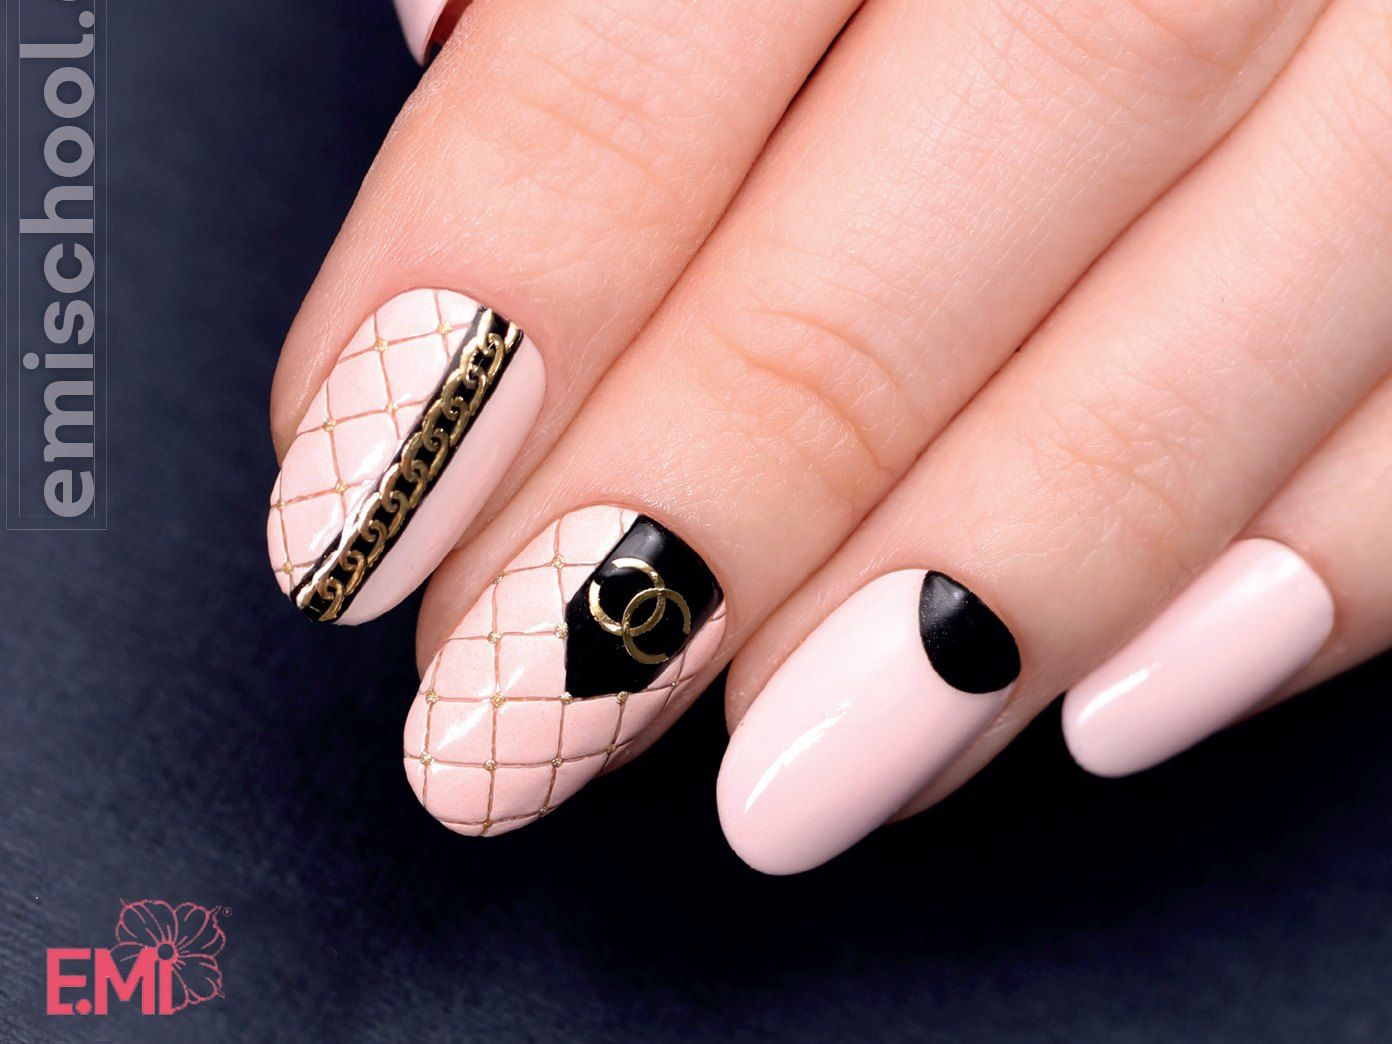 Nail Art Step By Step Guide How To Do Fashion 3d Design In Beige And